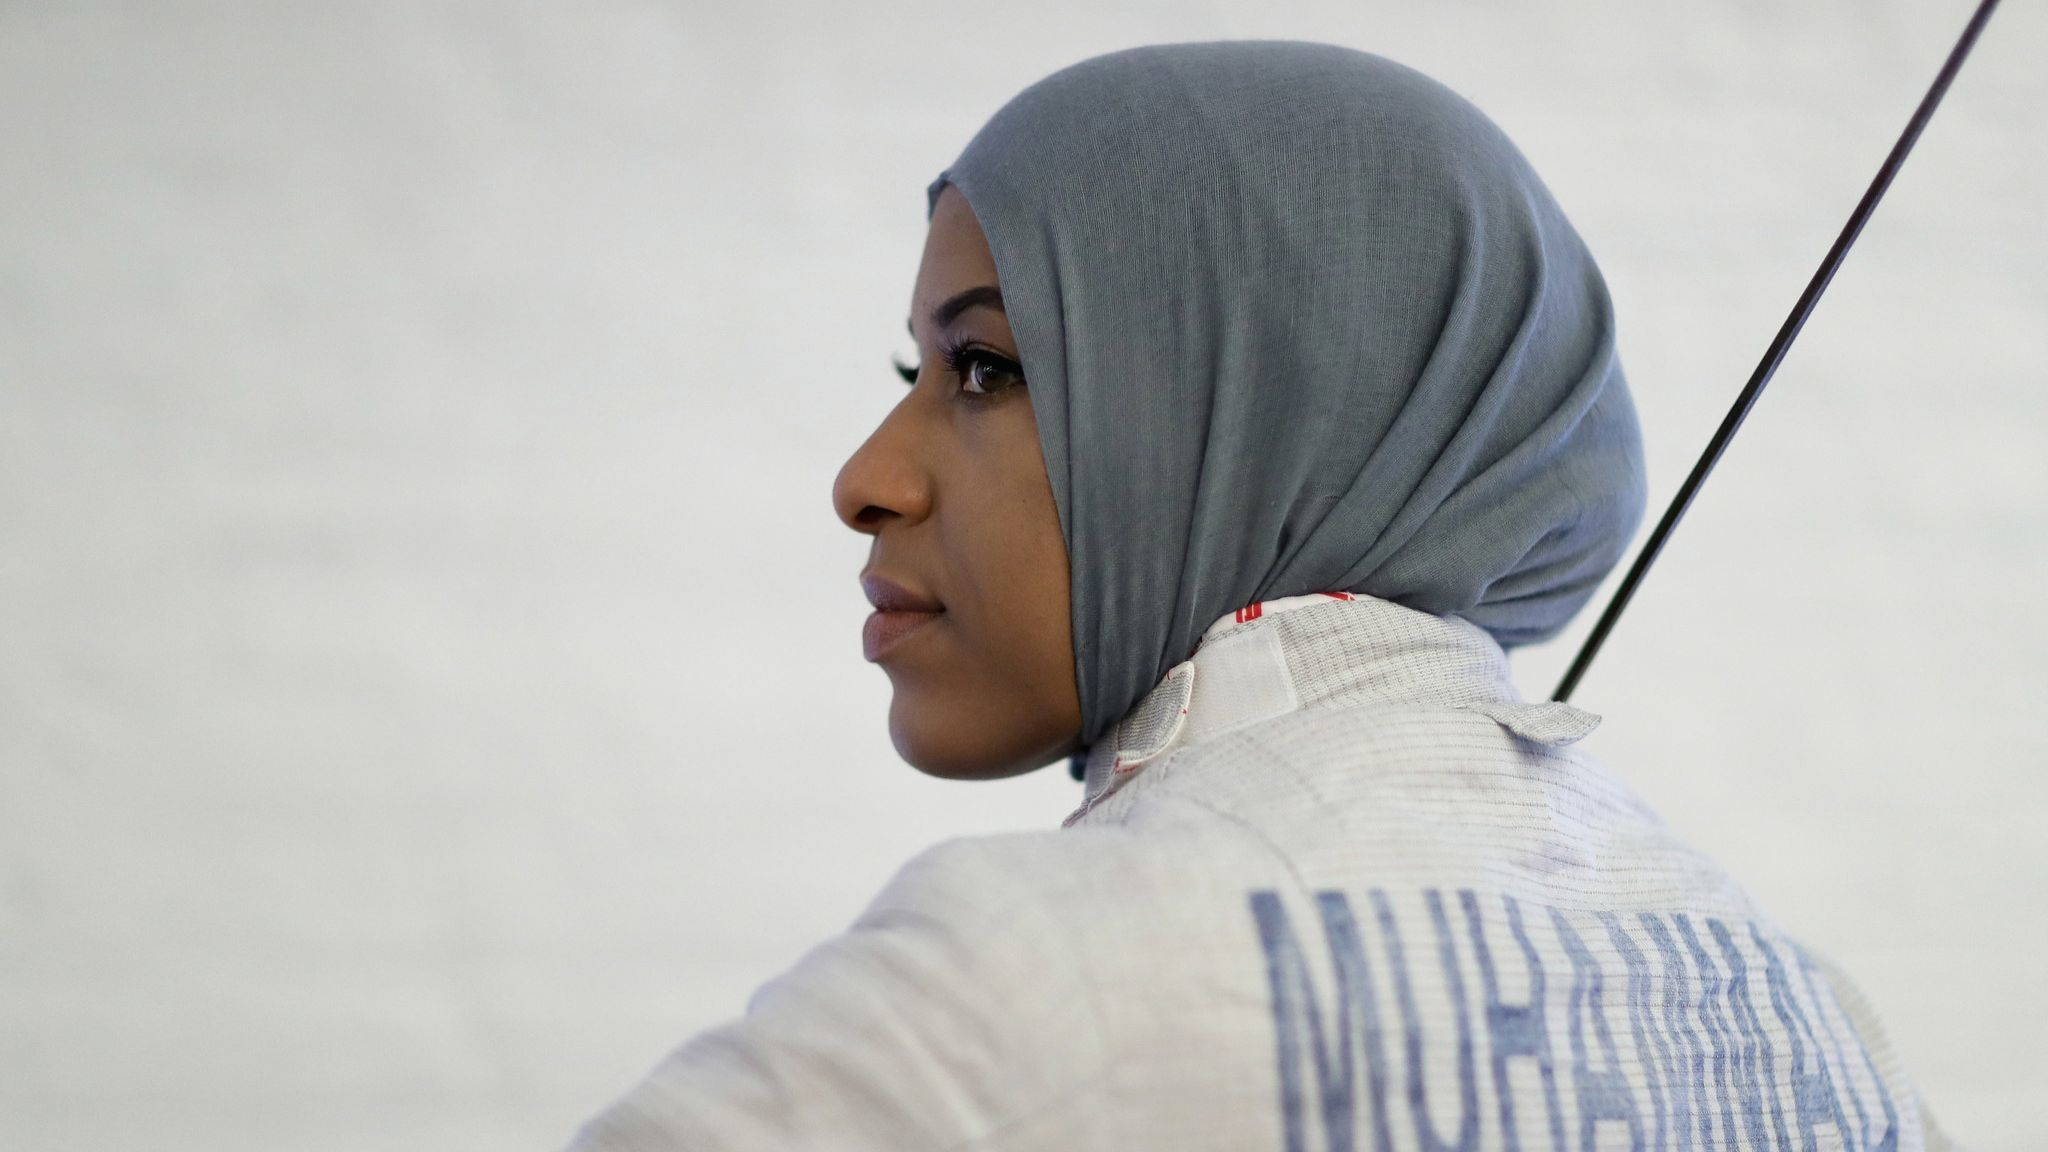 Hijab for Muslim athletes provokes controversy in France